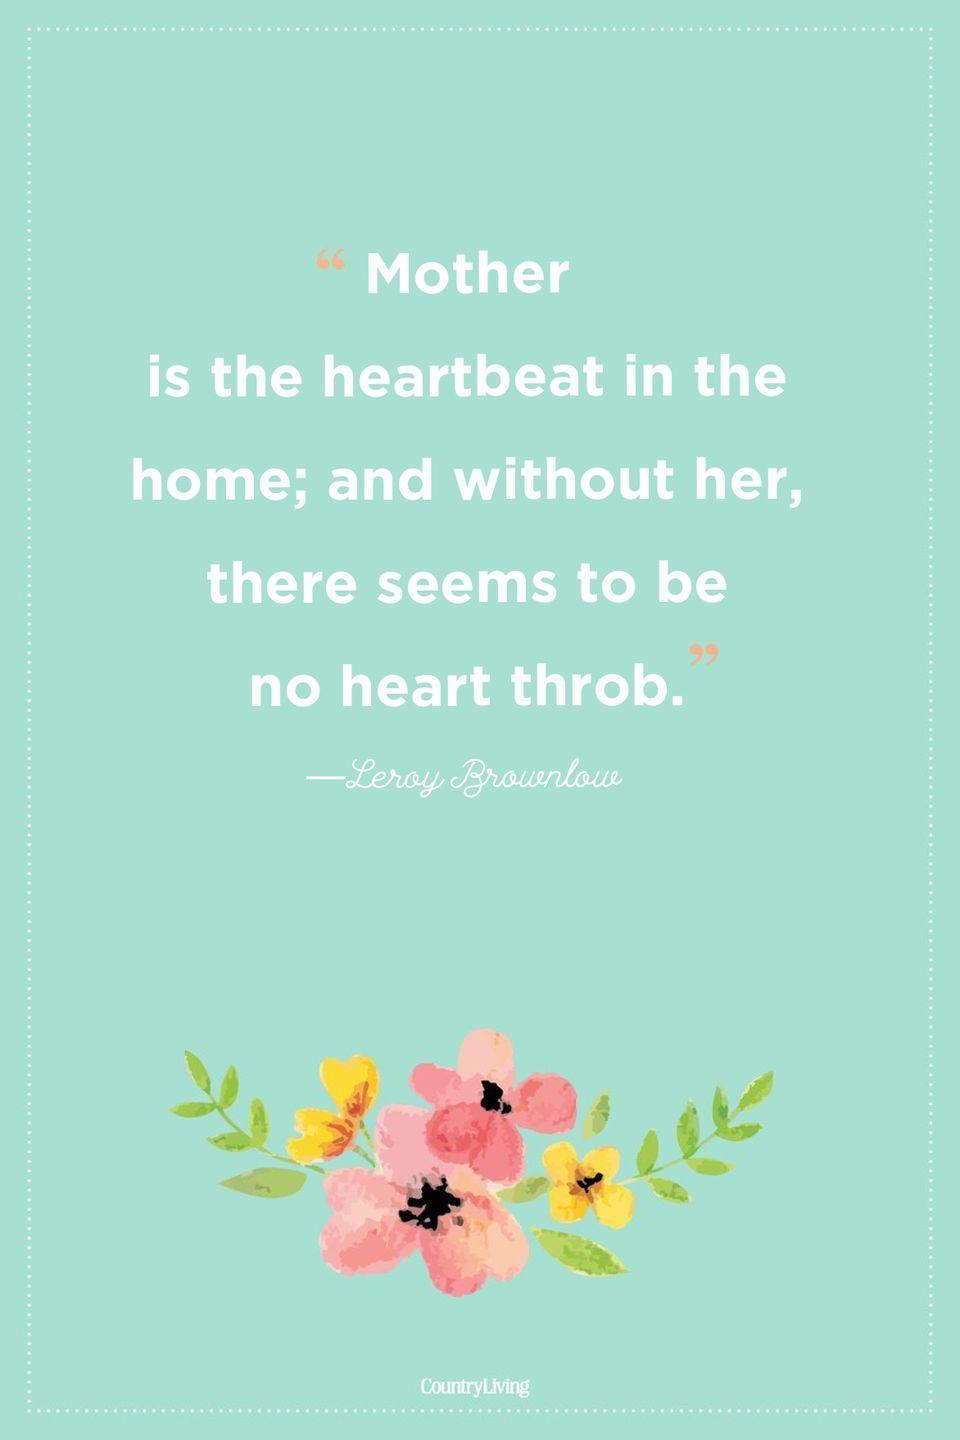 "<p>""Mother is the heartbeat in the home; and without her, there seems to be no heart throb.""</p>"